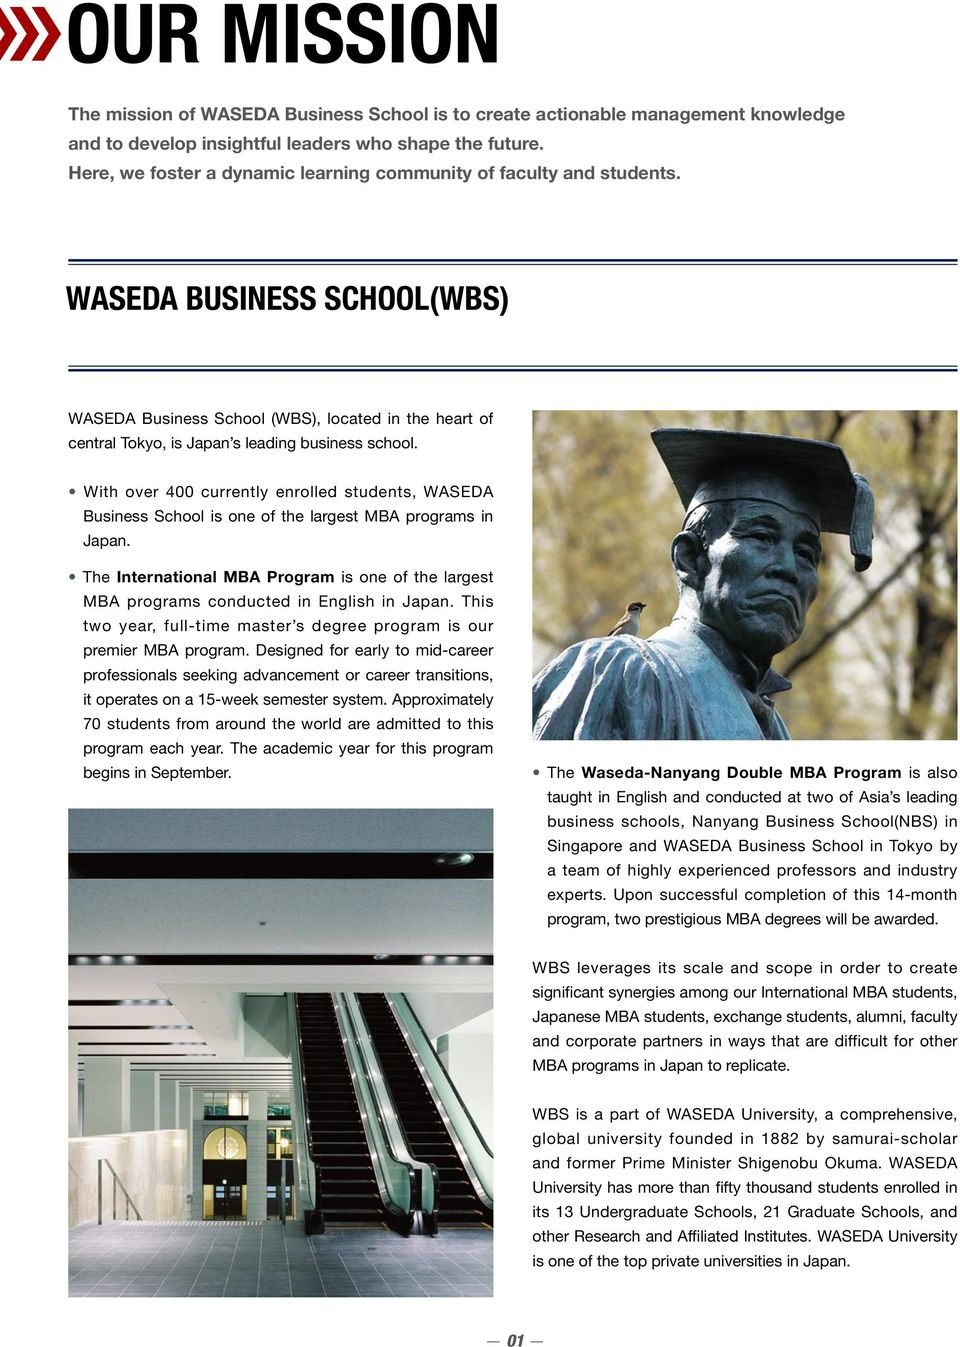 WASEDA BUSINESS SCHOOL(WBS) WASEDA Business School (WBS), located in the heart of central Tokyo, is Japan s leading business school.